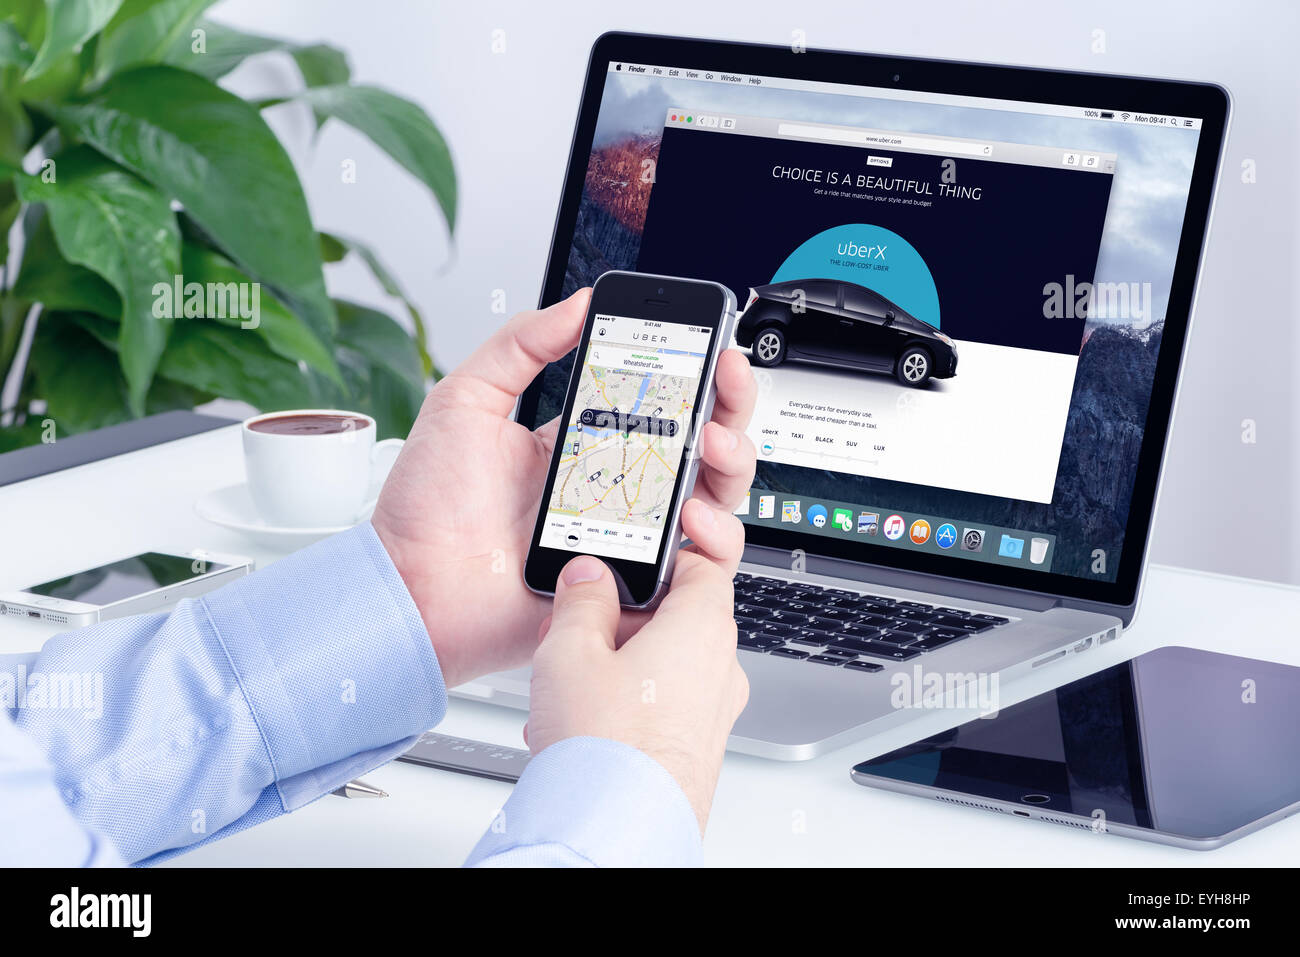 Varna, Bulgaria - May 29, 2015: Man orders Uber X through his iPhone and Macbook with Uber website on the background. Stock Photo